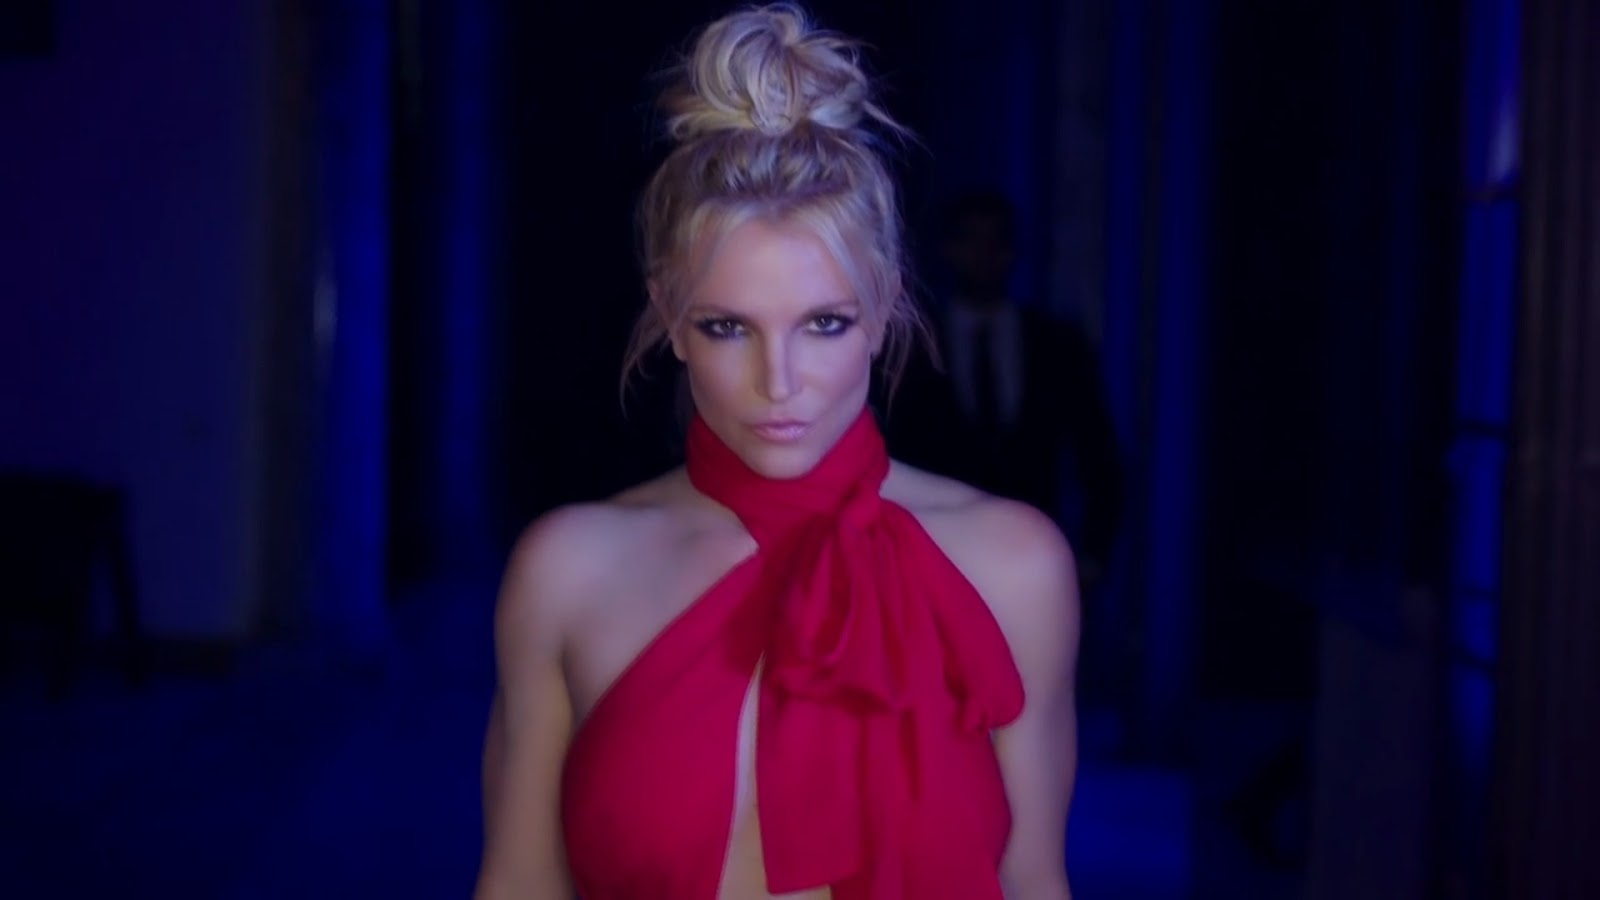 Britney spears nackt party picture 10